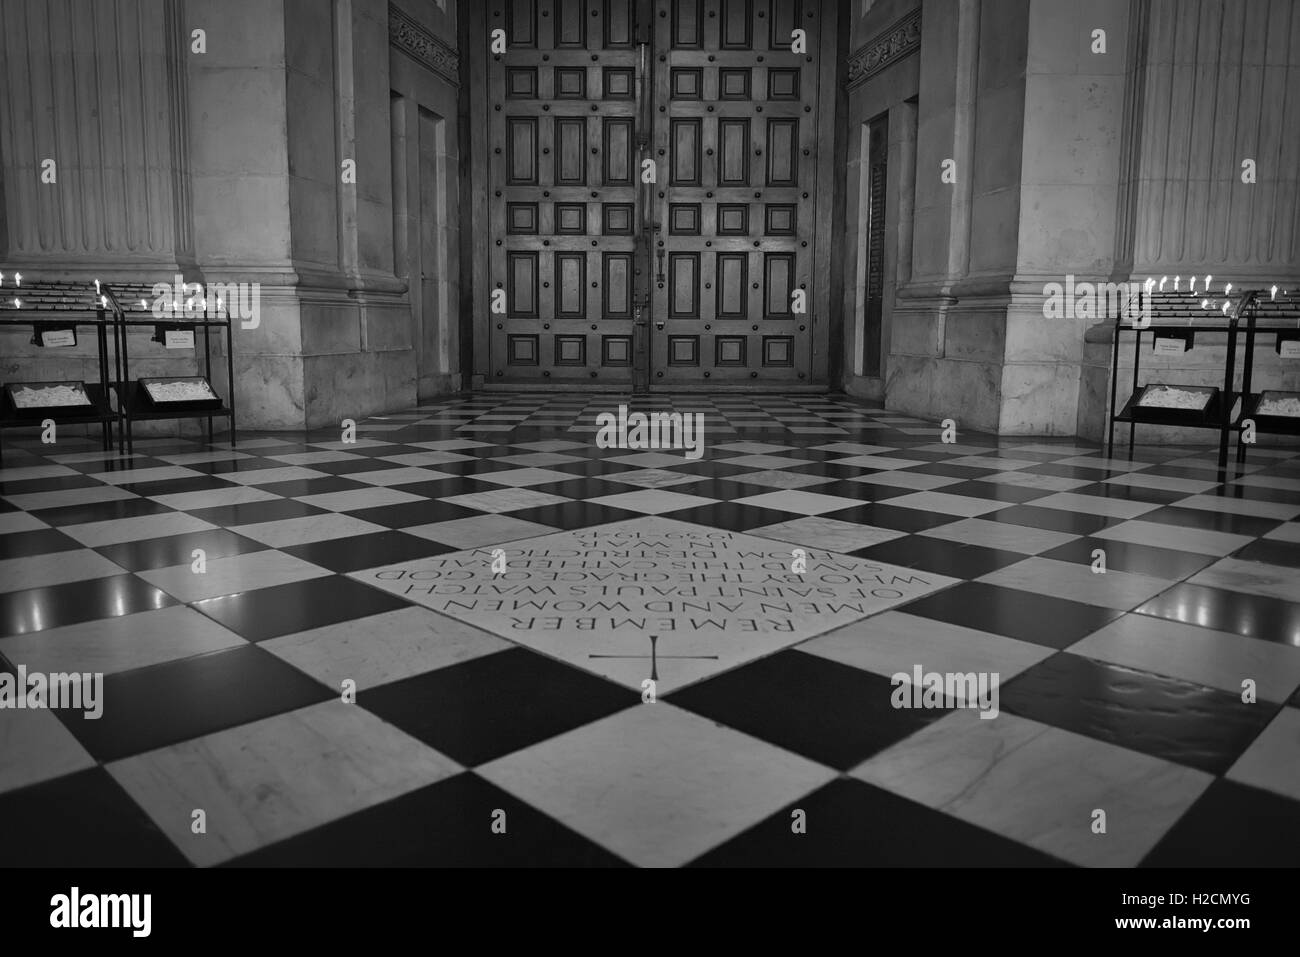 Floor Tiles Black And White Stock Photos Images Alamy